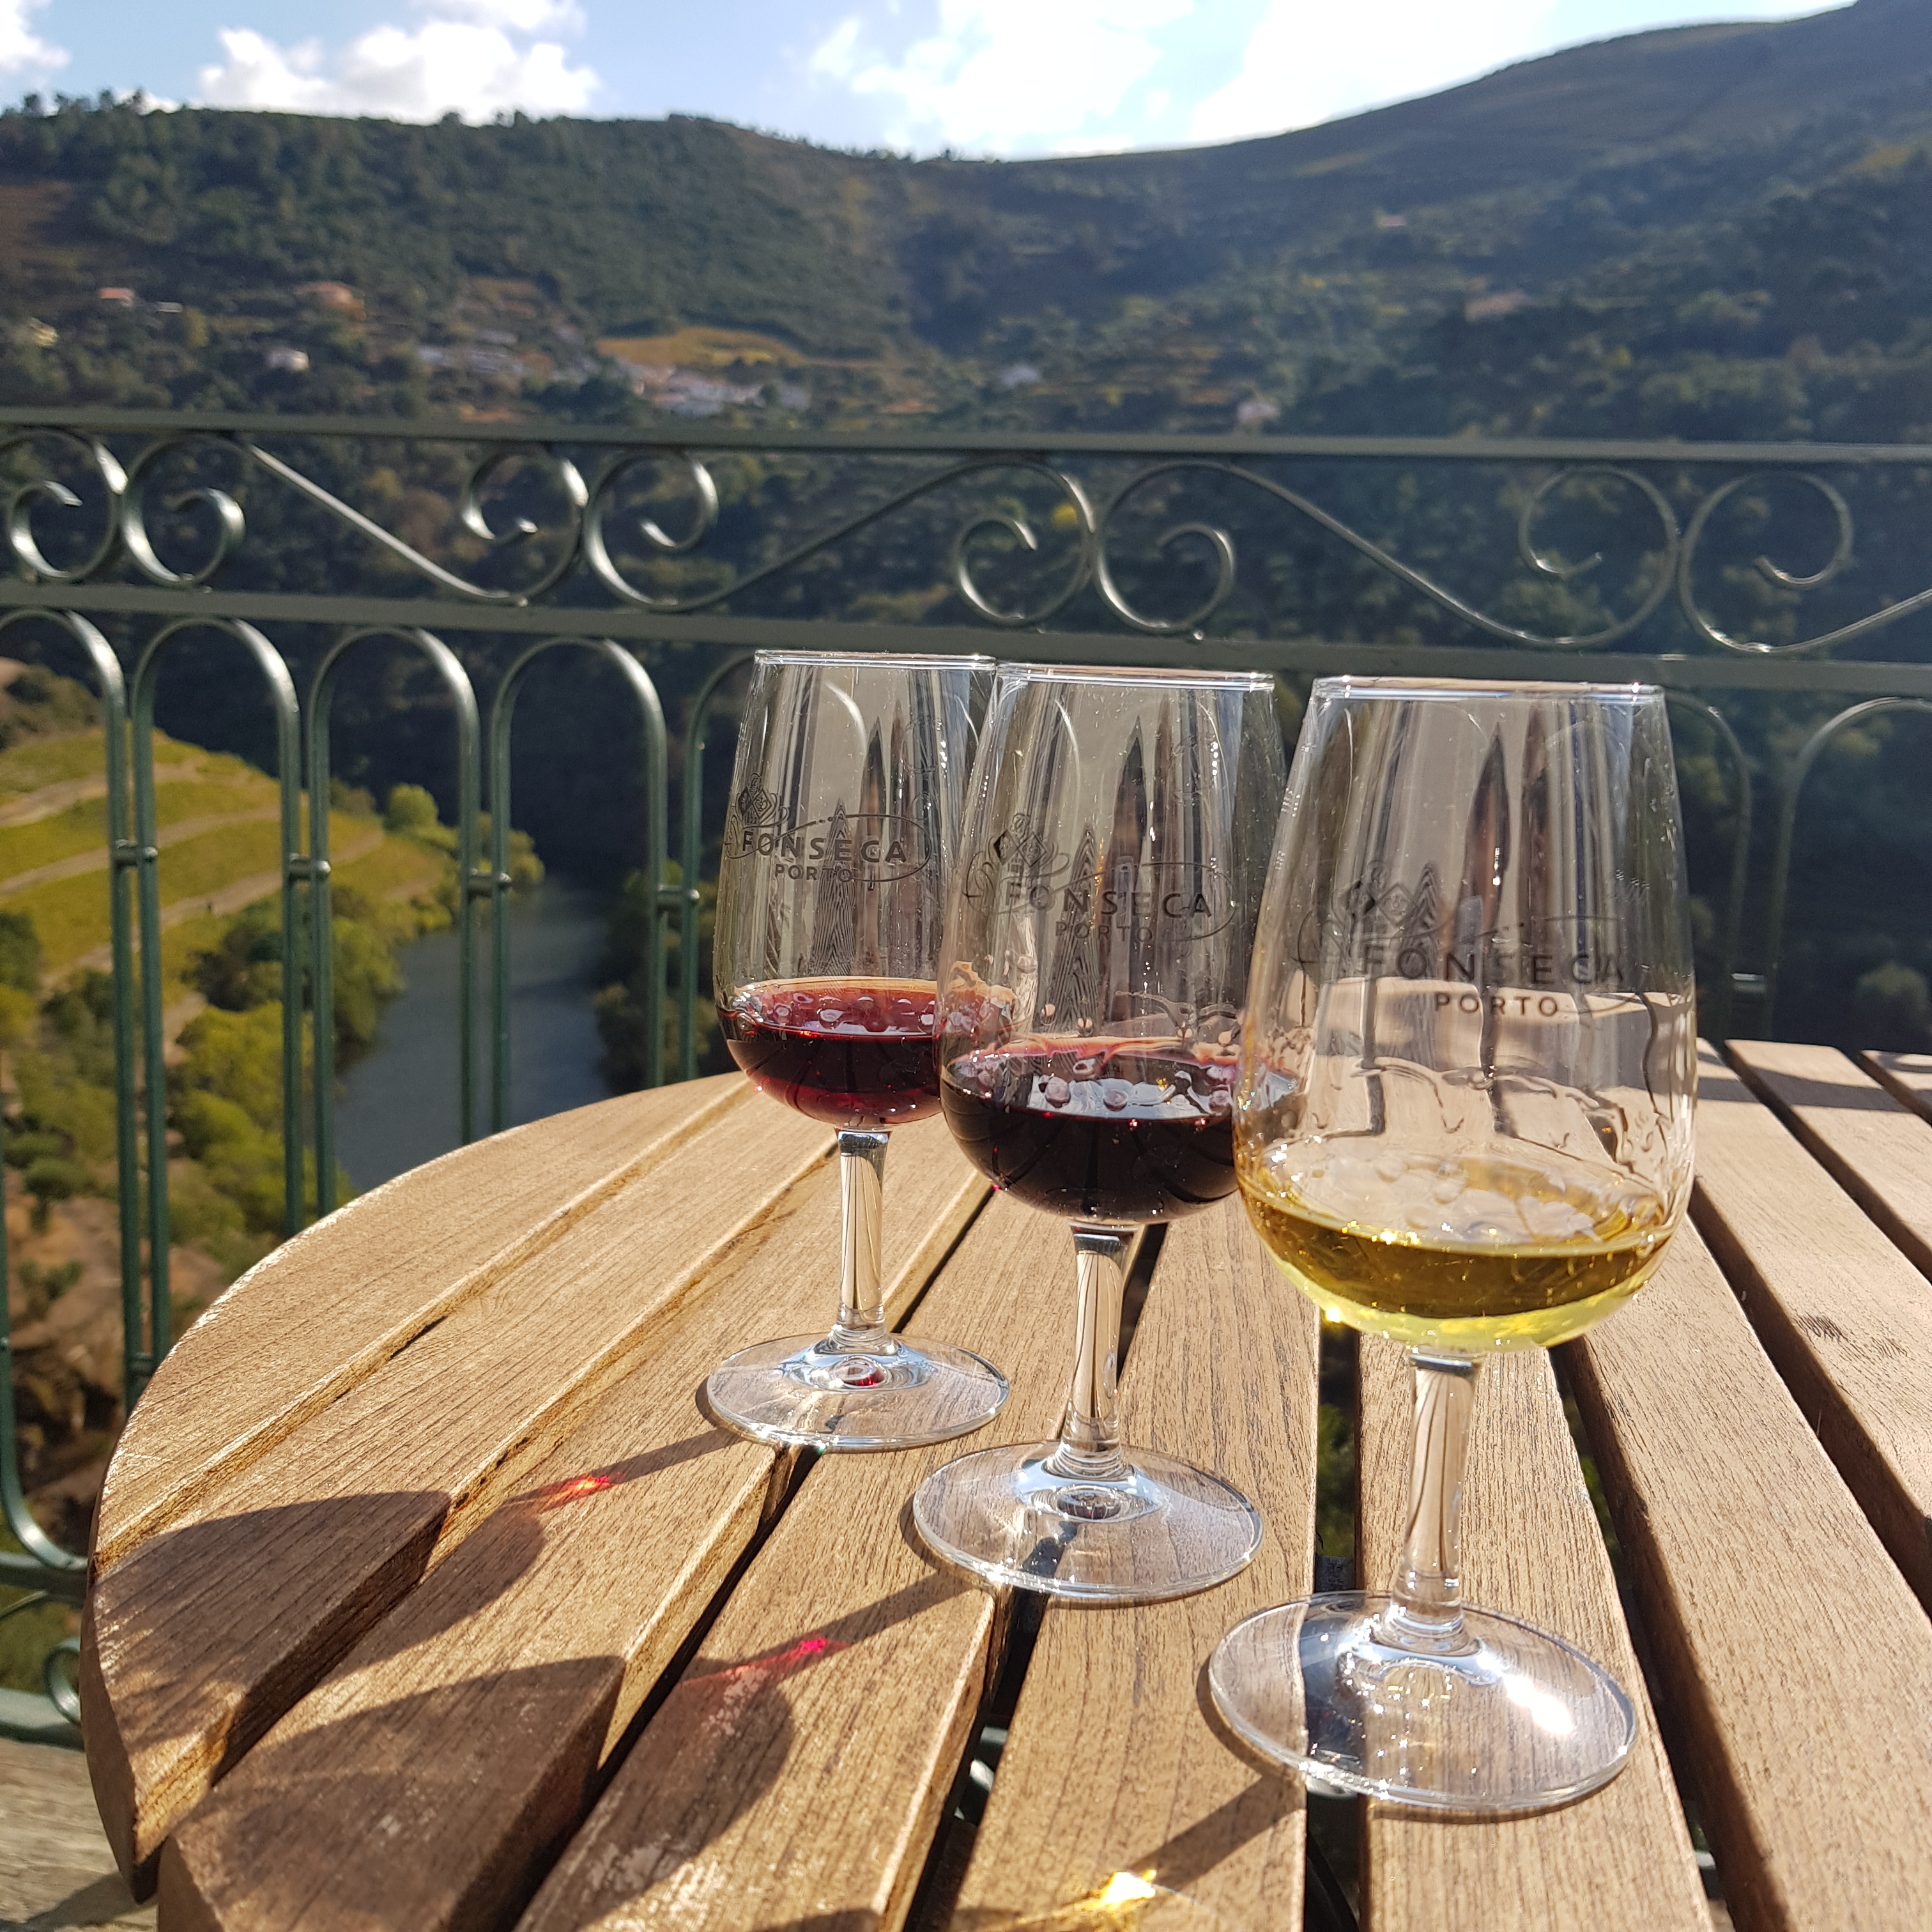 Port tasting with stunning views of the Douro Valley